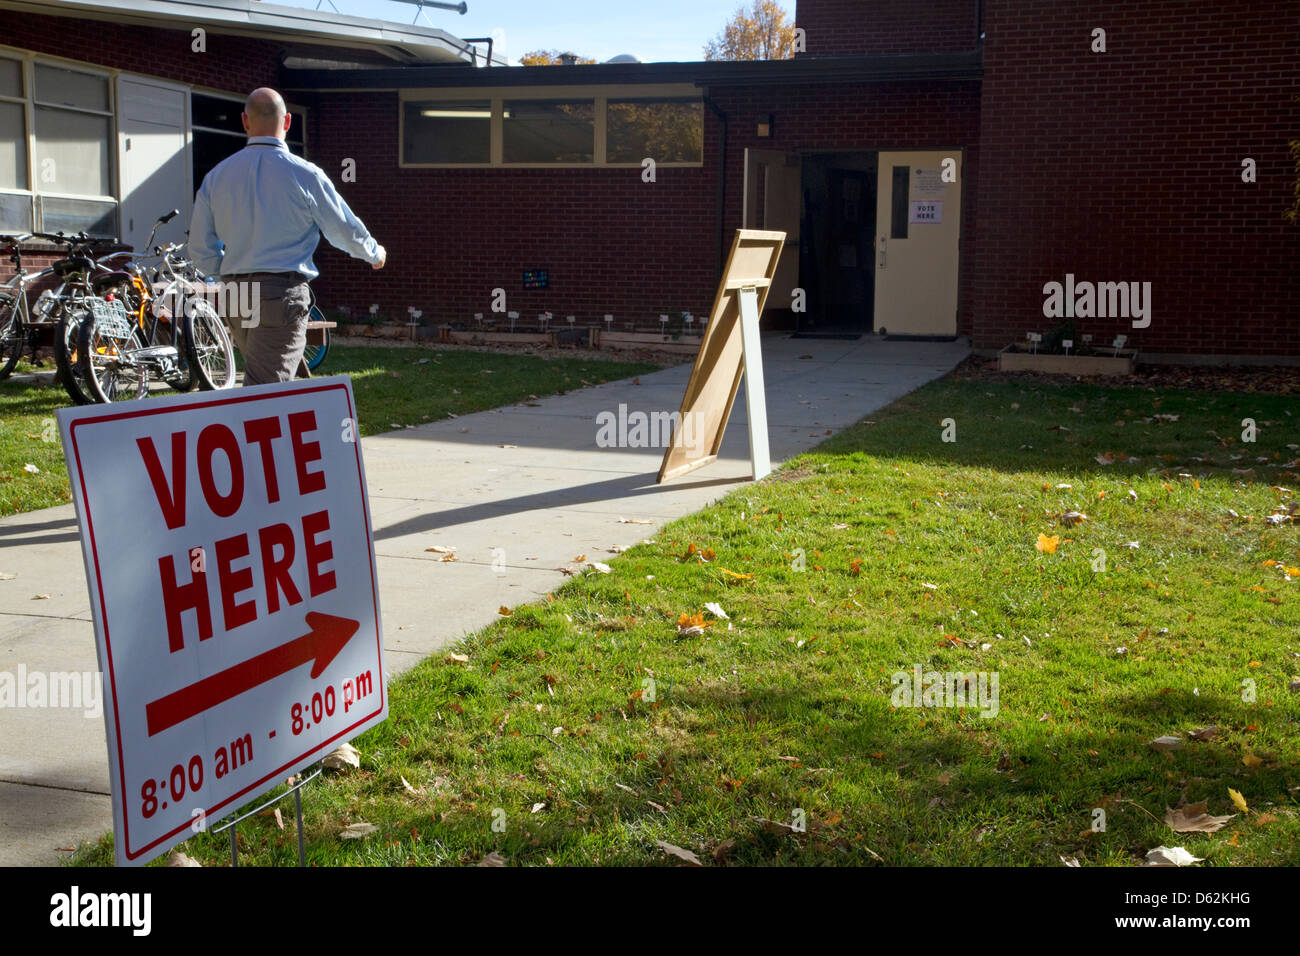 Vote Here sign at a polling place on election day in Bosie, Idaho, USA. - Stock Image